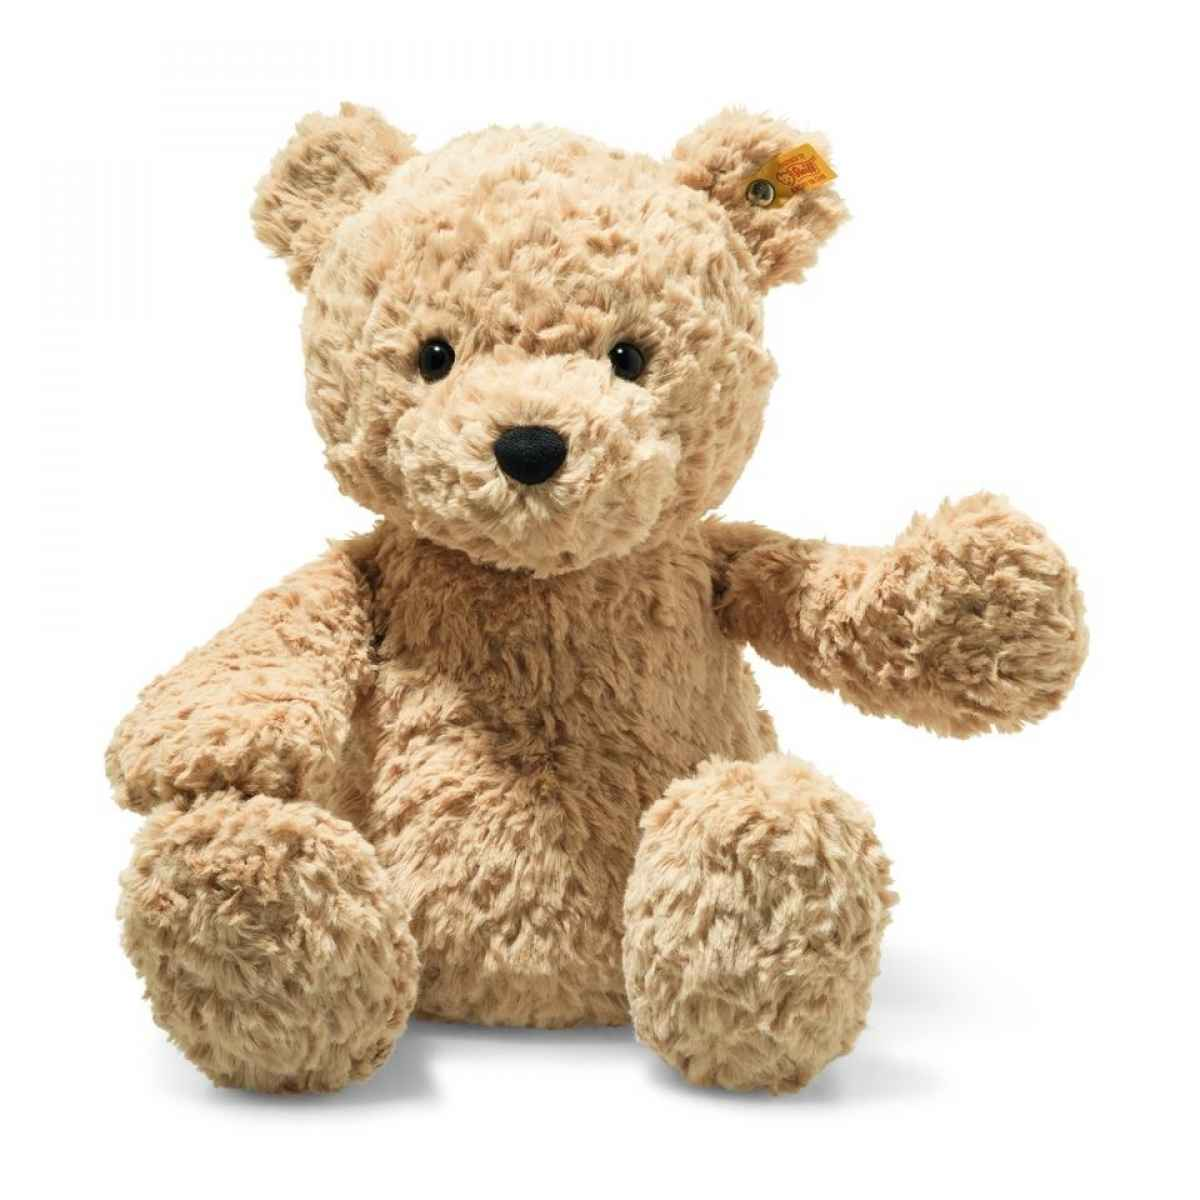 Jimmy Teddy Bear